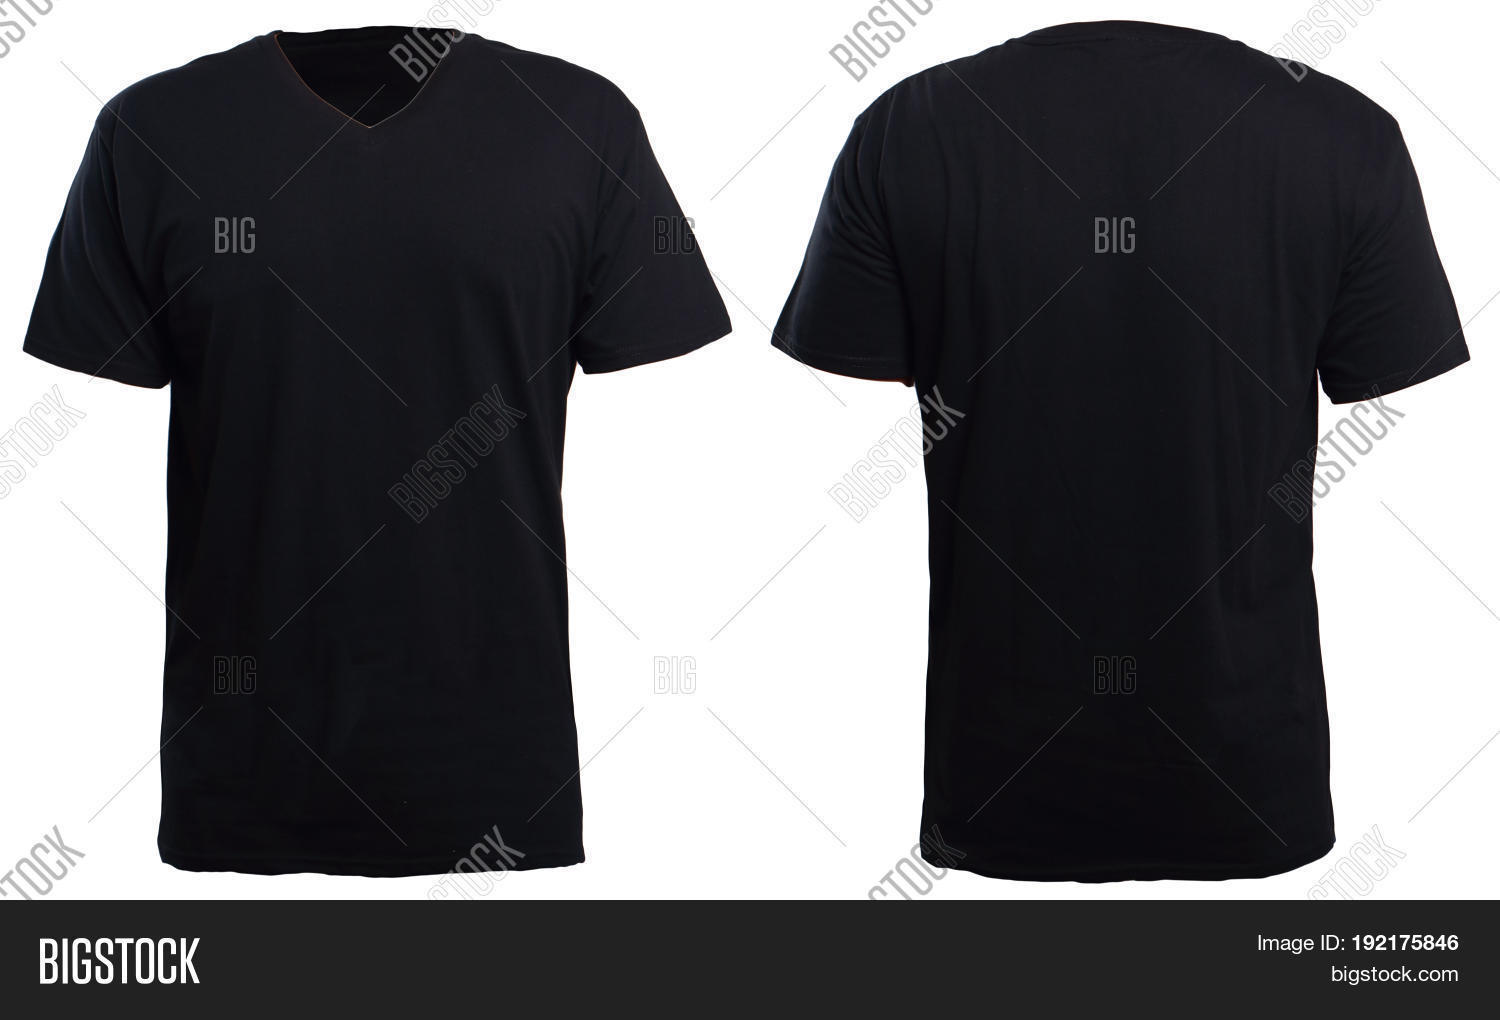 Black t shirt back and front plain - Blank V Neck Shirt Mock Up Template Front And Back View Isolated On White Plain